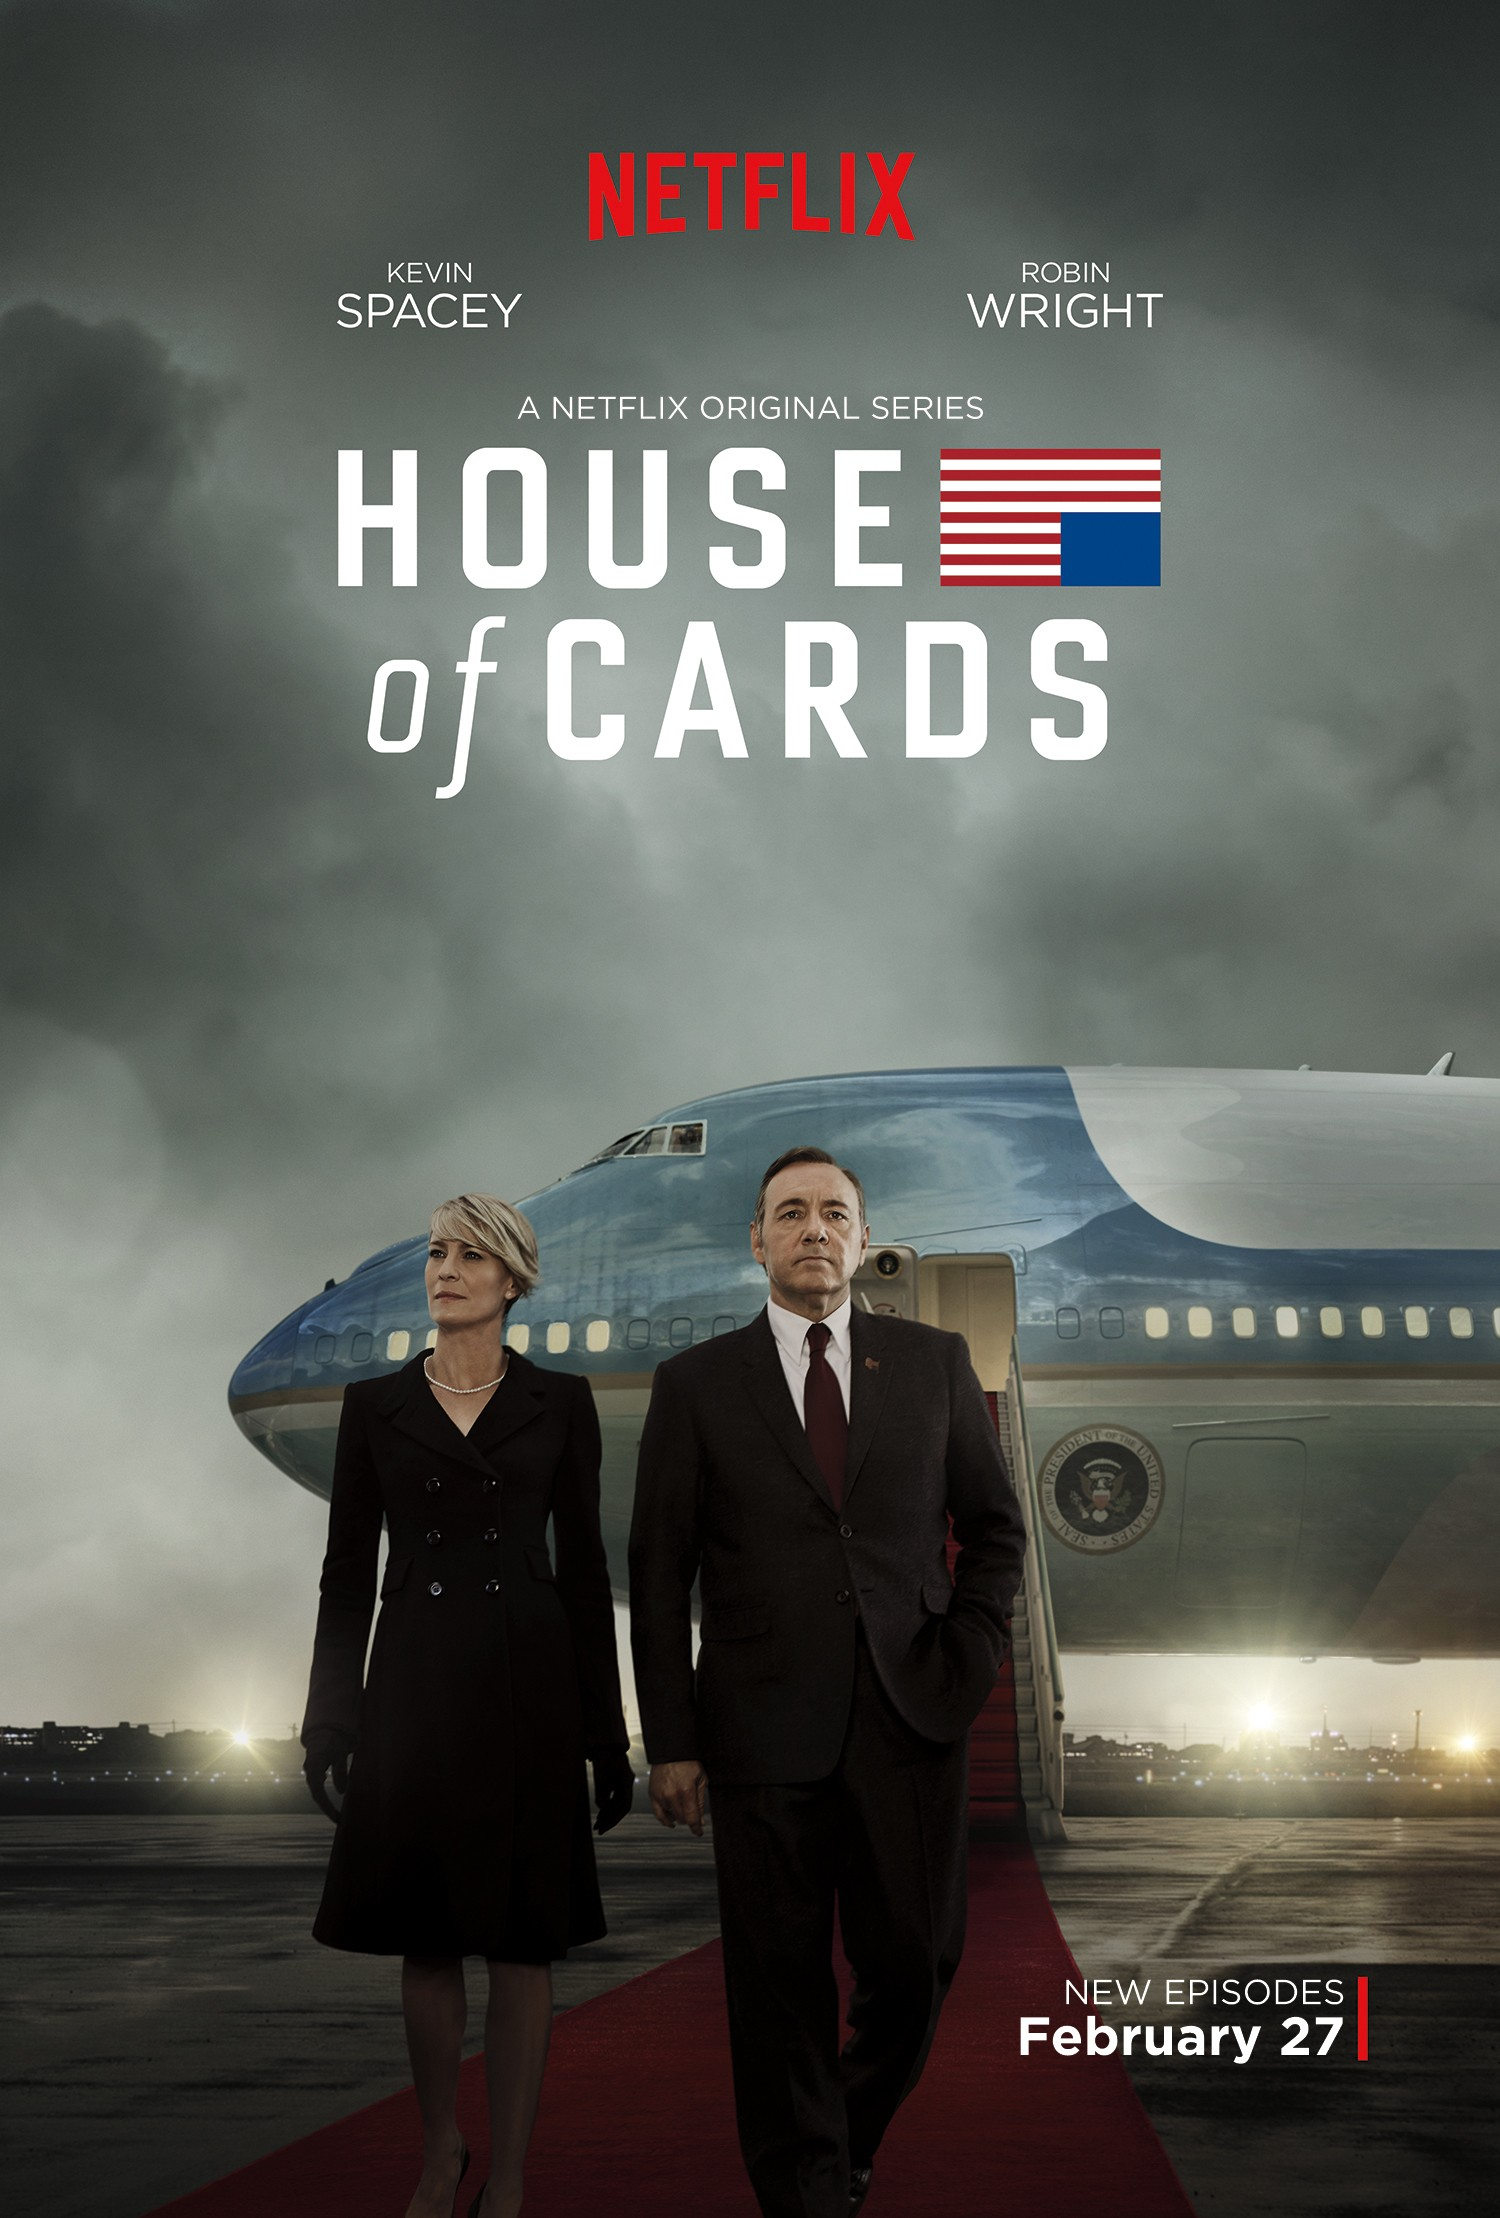 House_of_Cards_Season_3_poster.jpg